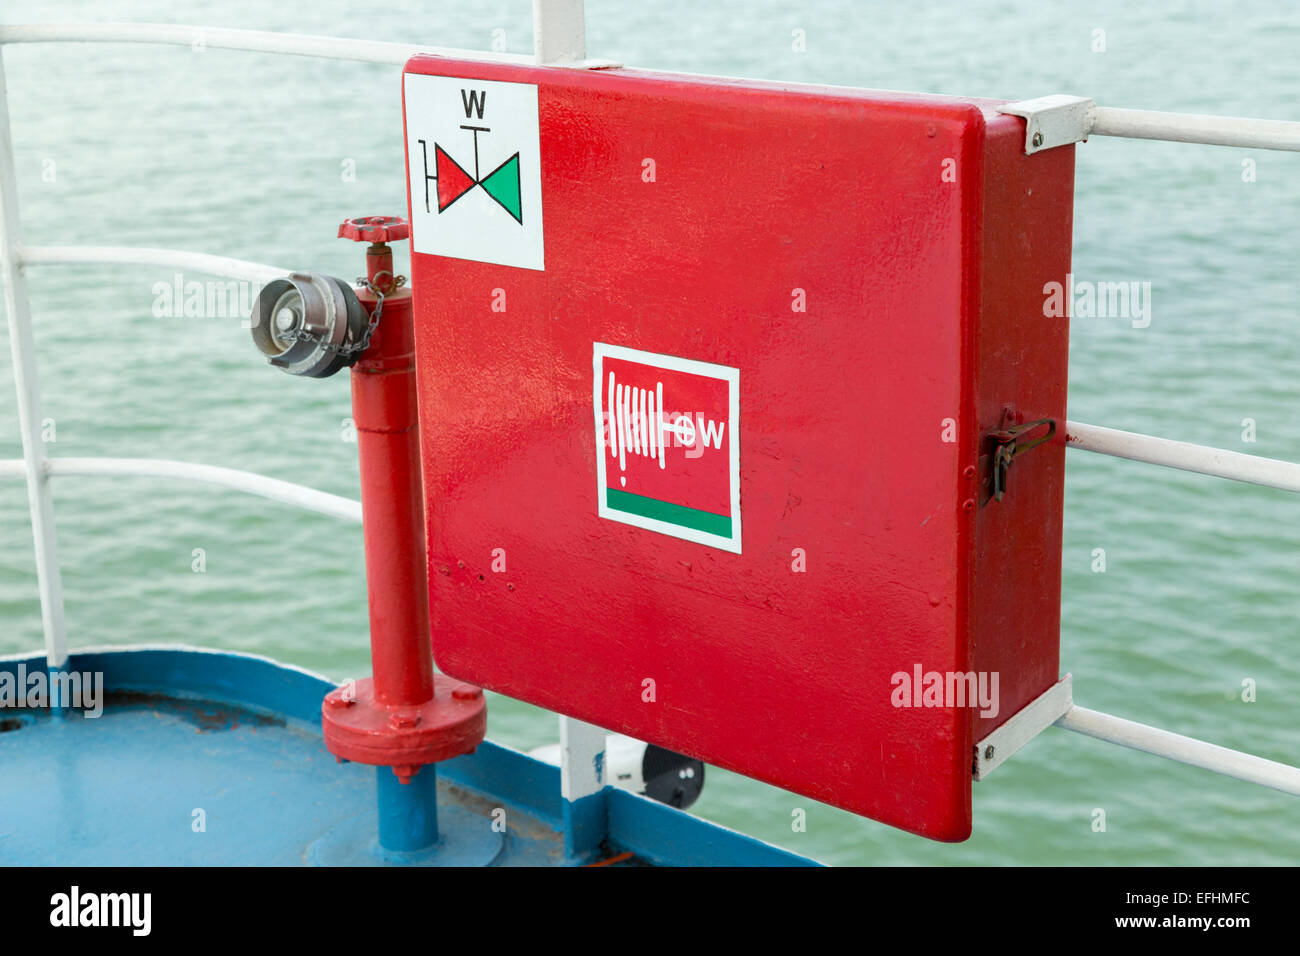 Firefighting equipment on deck of car ferry - Stock Image